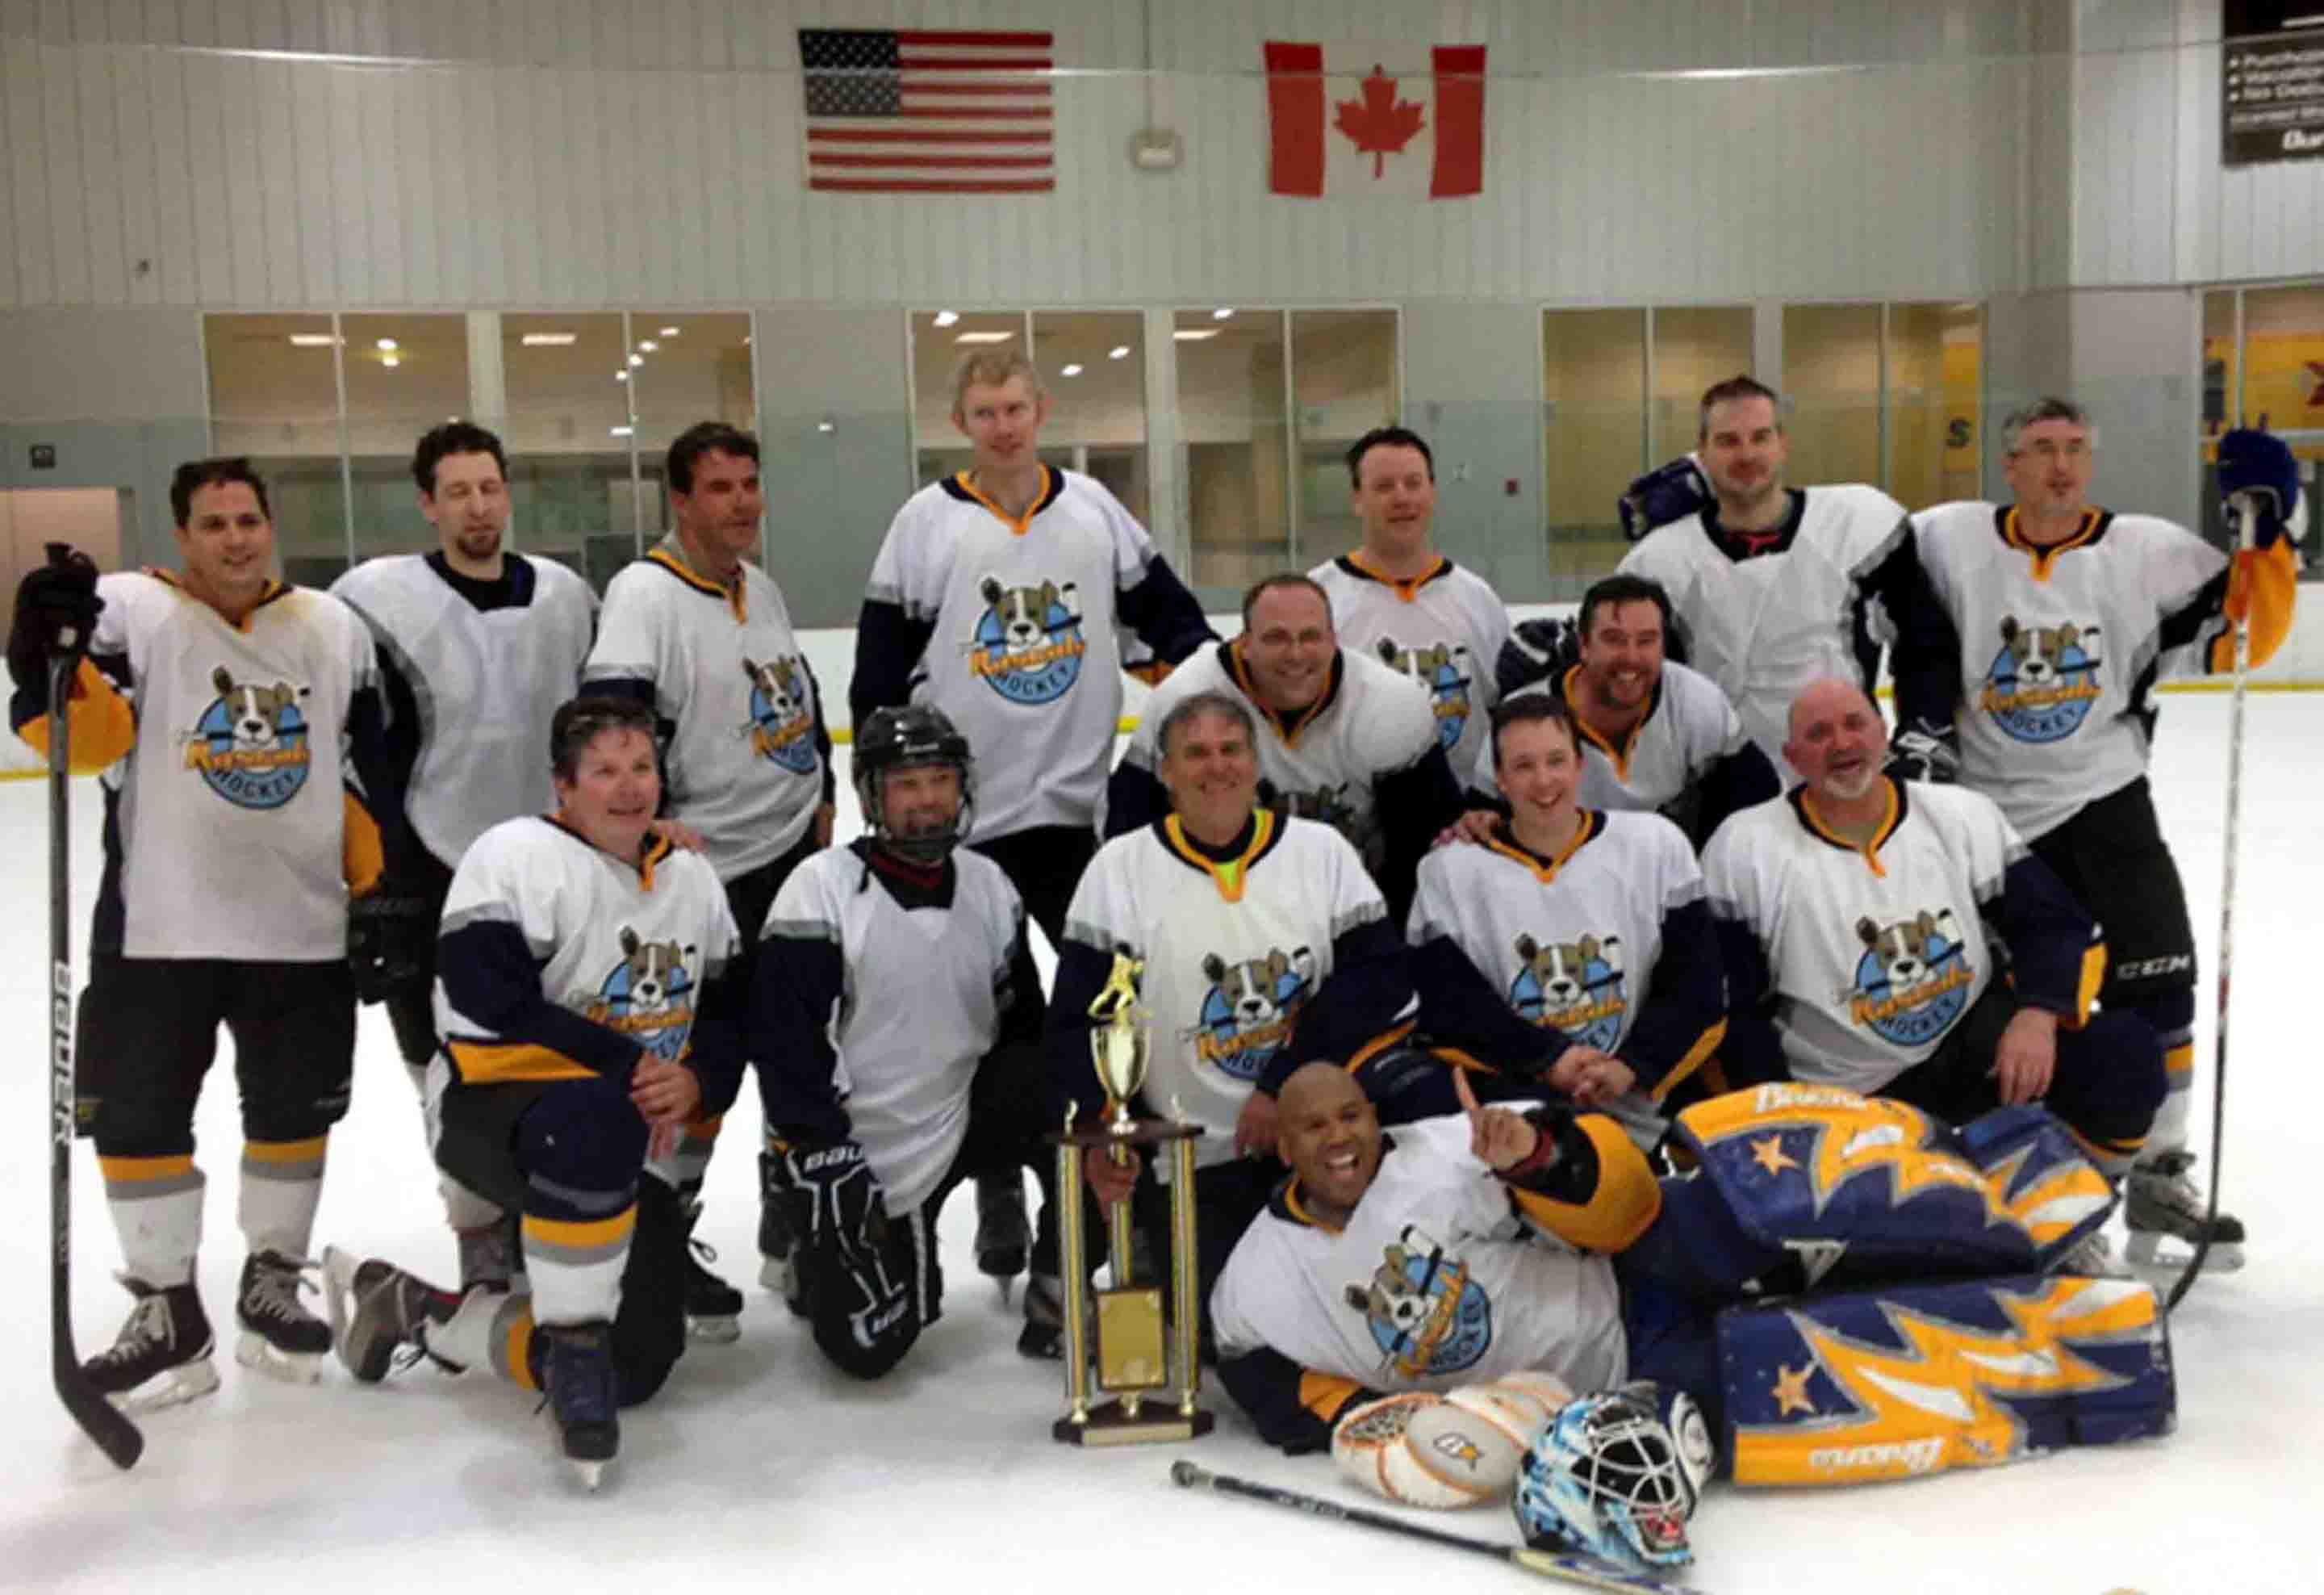 Winter 2013 C 30 West Champions-Racals